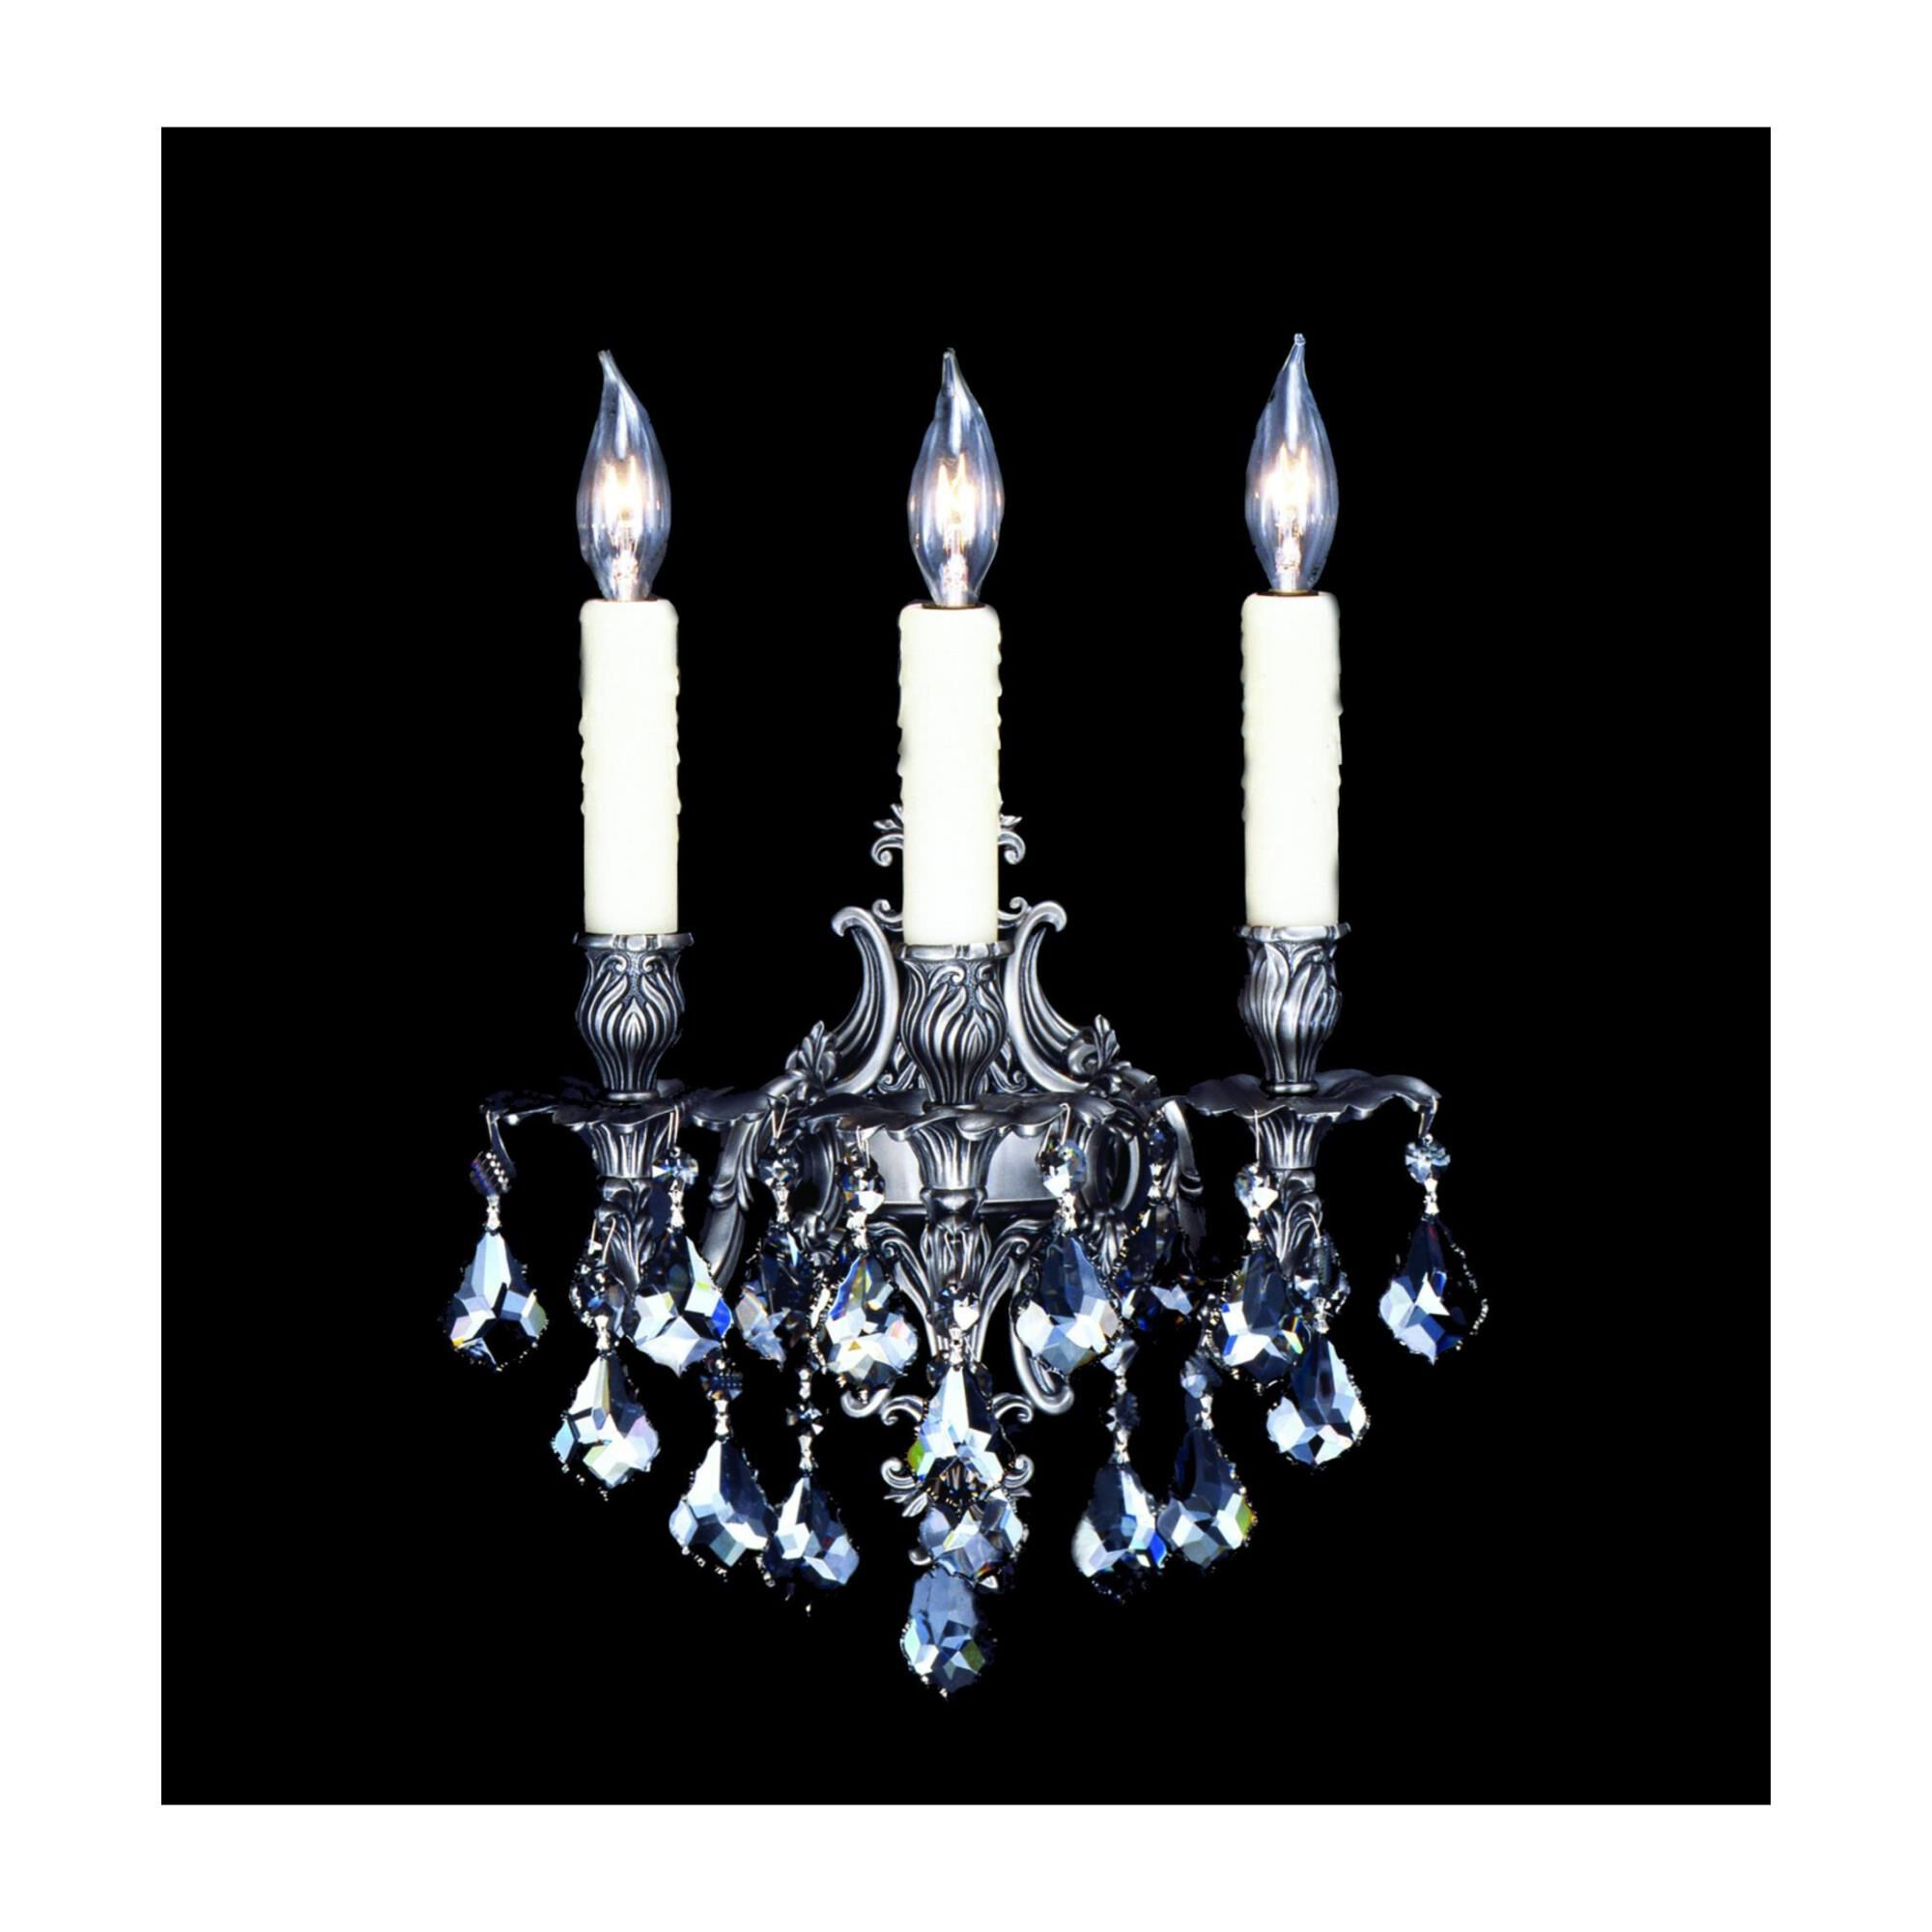 American Brass And Crystal 12 Inch Wall Sconce - Ws9483-k-07g-pi - Traditional Wall Sconce